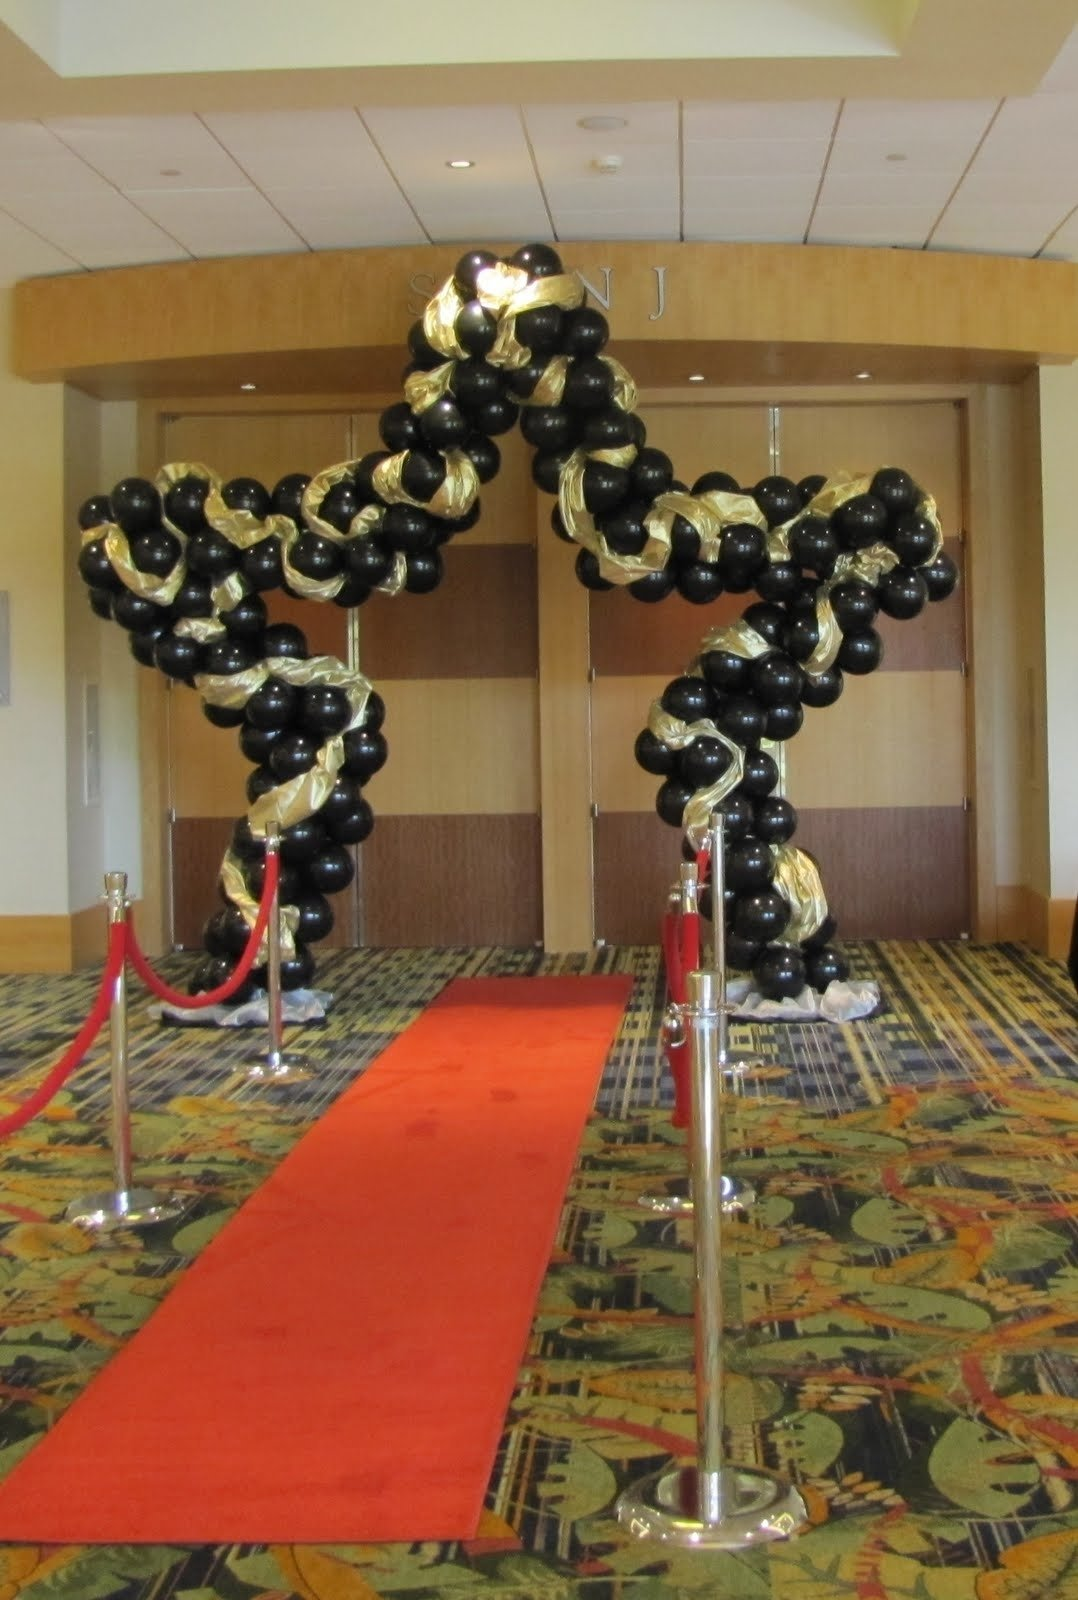 10 Famous Red Carpet Theme Party Ideas beautiful red carpet theme party costume ideas nytexas 2020